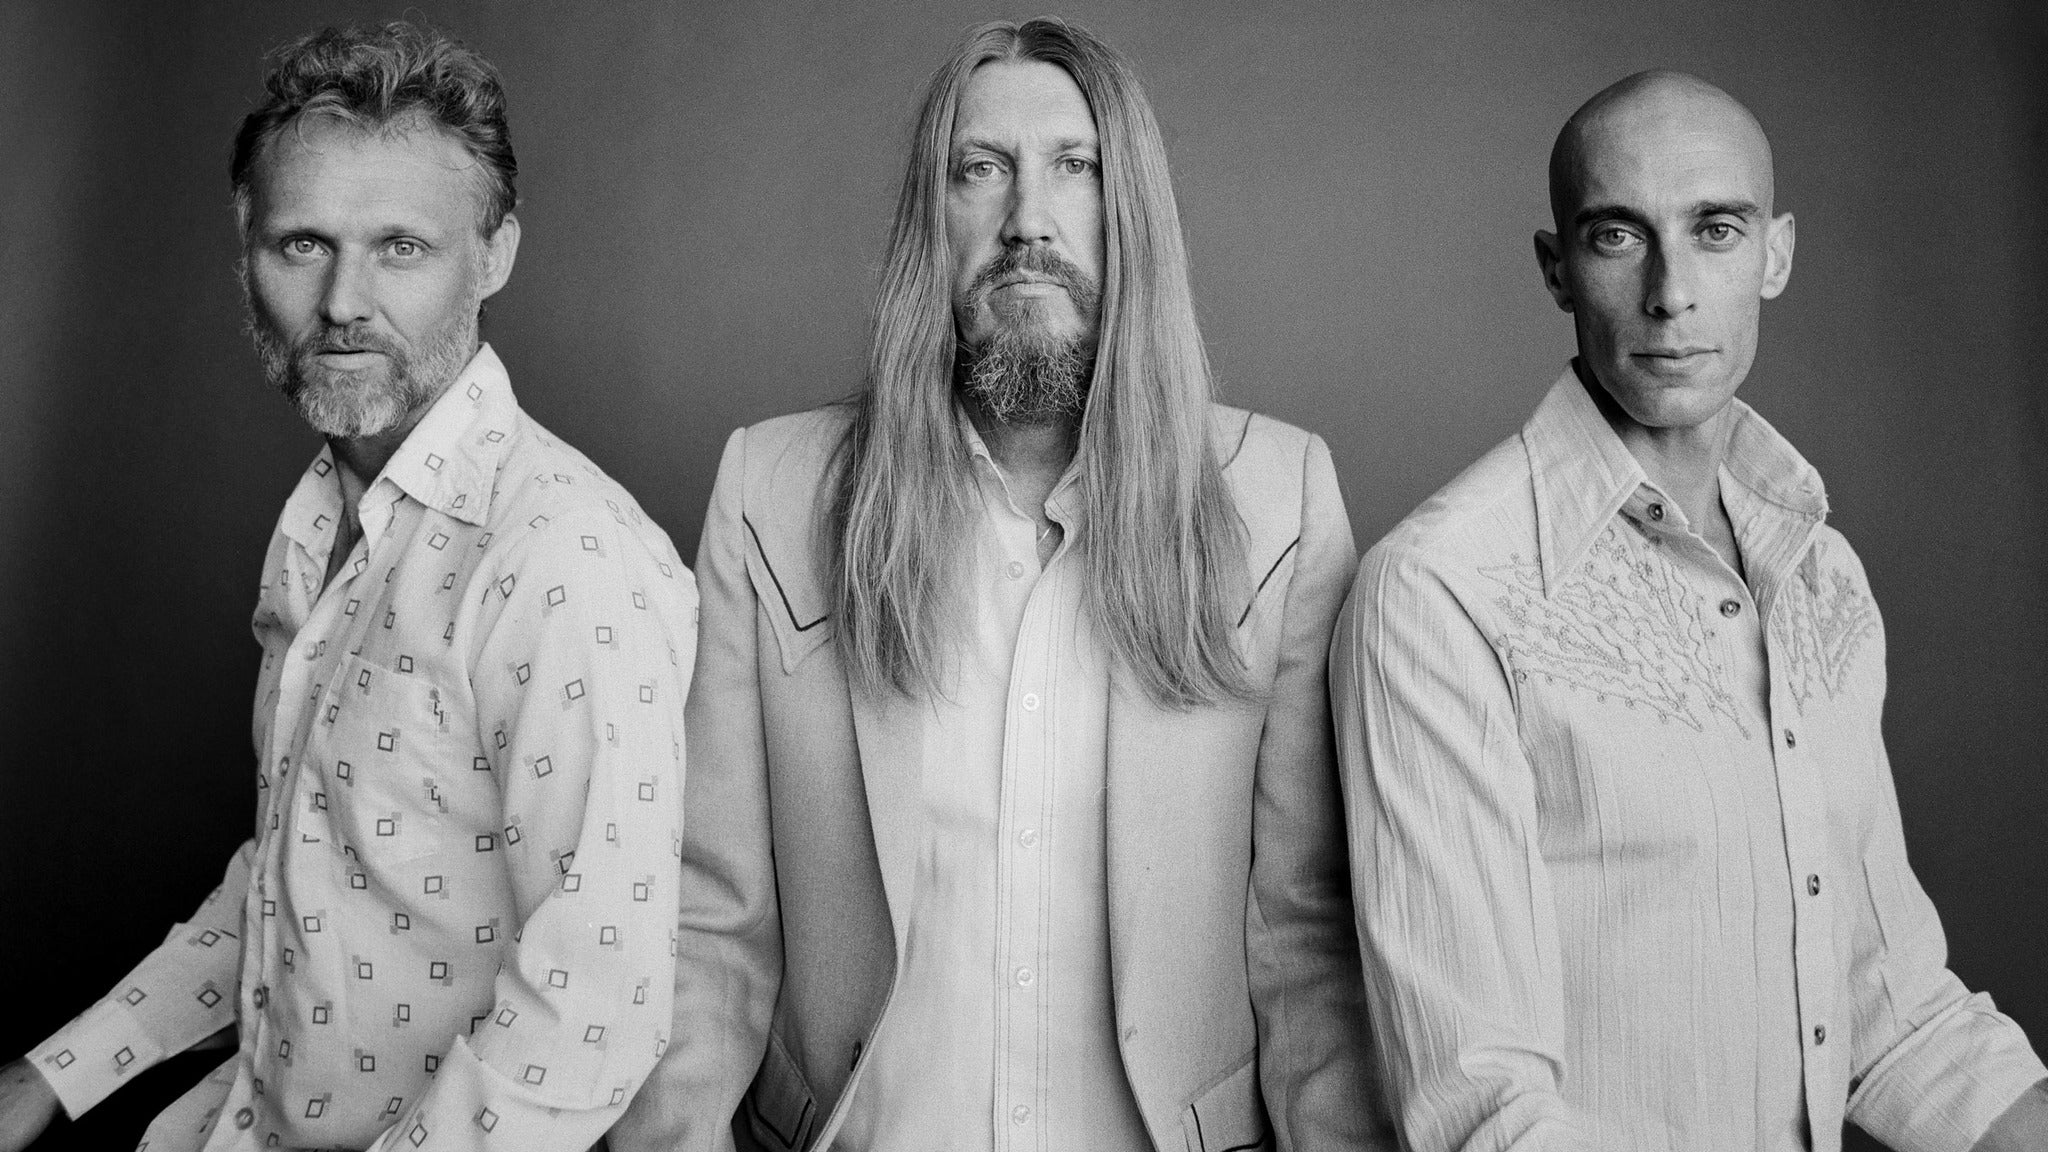 The Wood Brothers pre-sale password